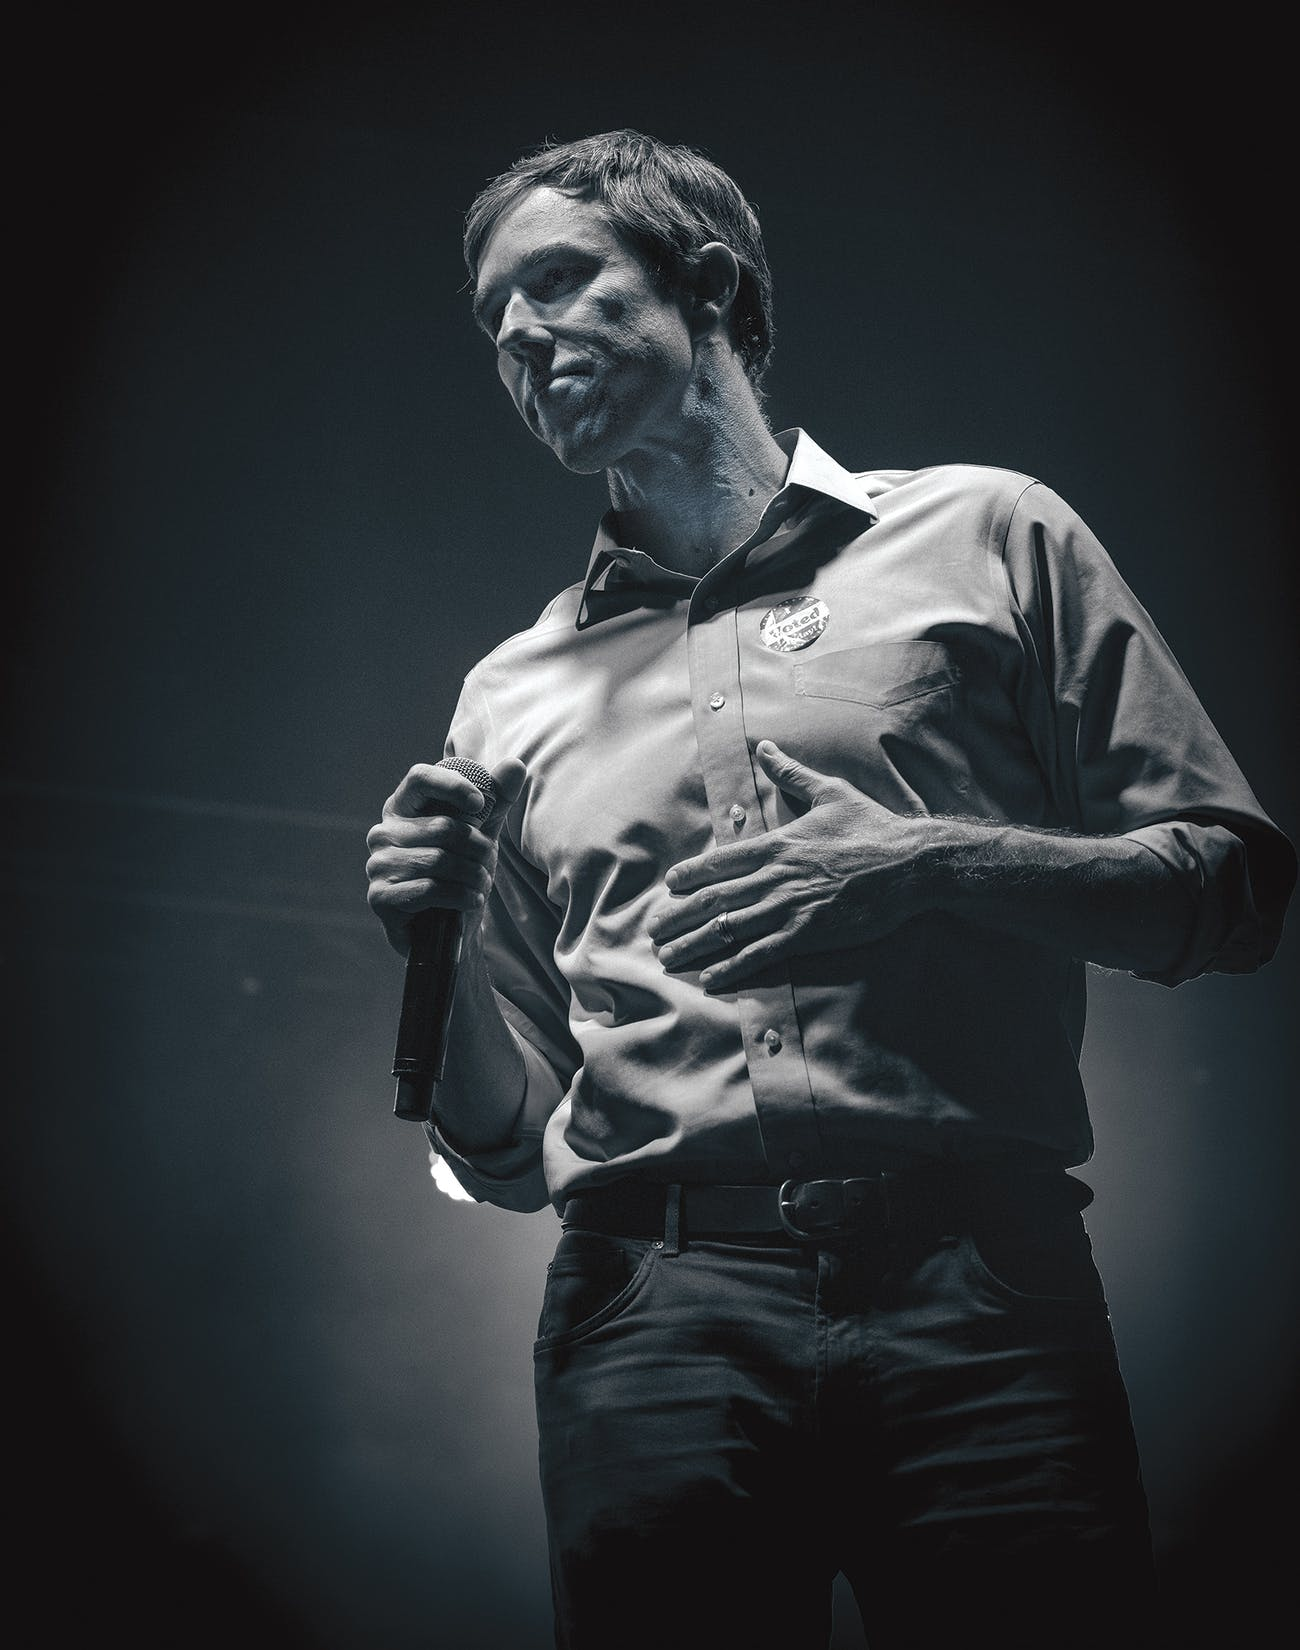 O'Rourke giving his concession speech at Southwest University Park, in El Paso, on November 6, 2018.